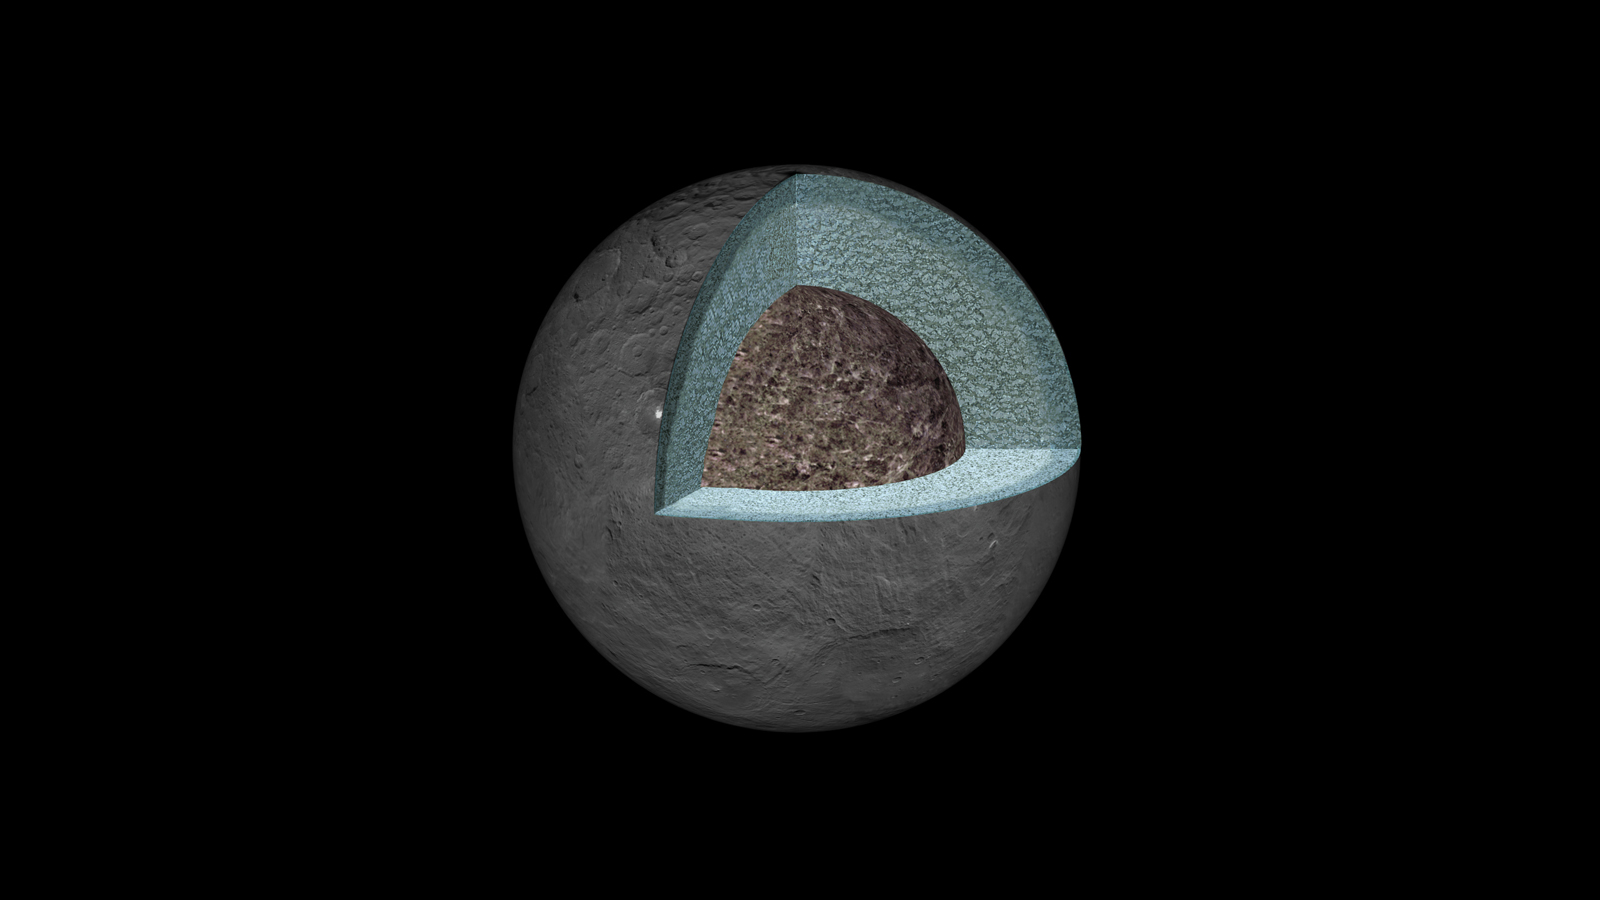 Artist's conception of Ceres' internal structure, based on data from the Dawn mission.